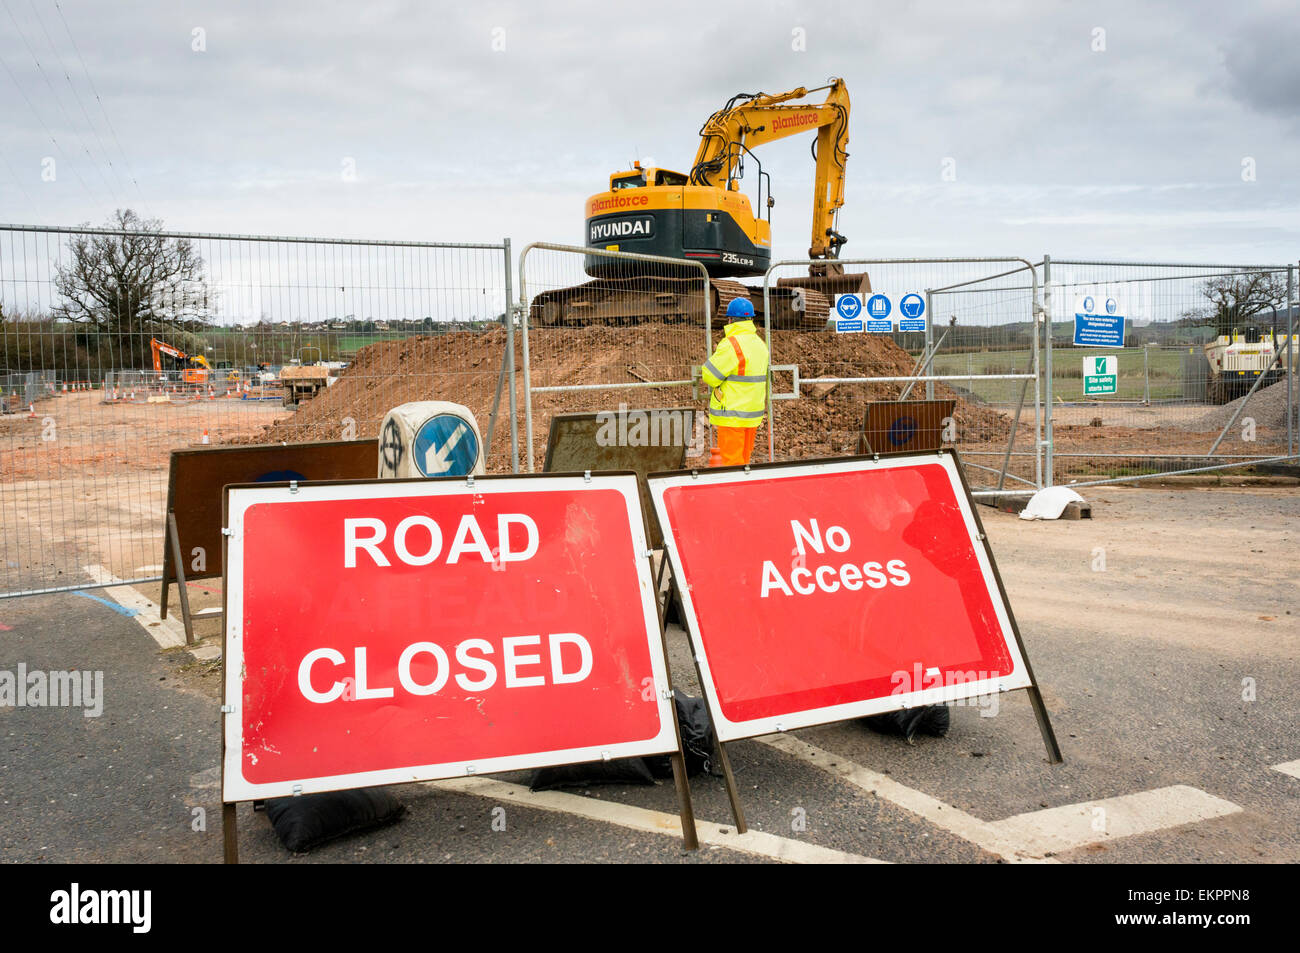 Road closed sign and construction workers building a new road, England, UK - Stock Image